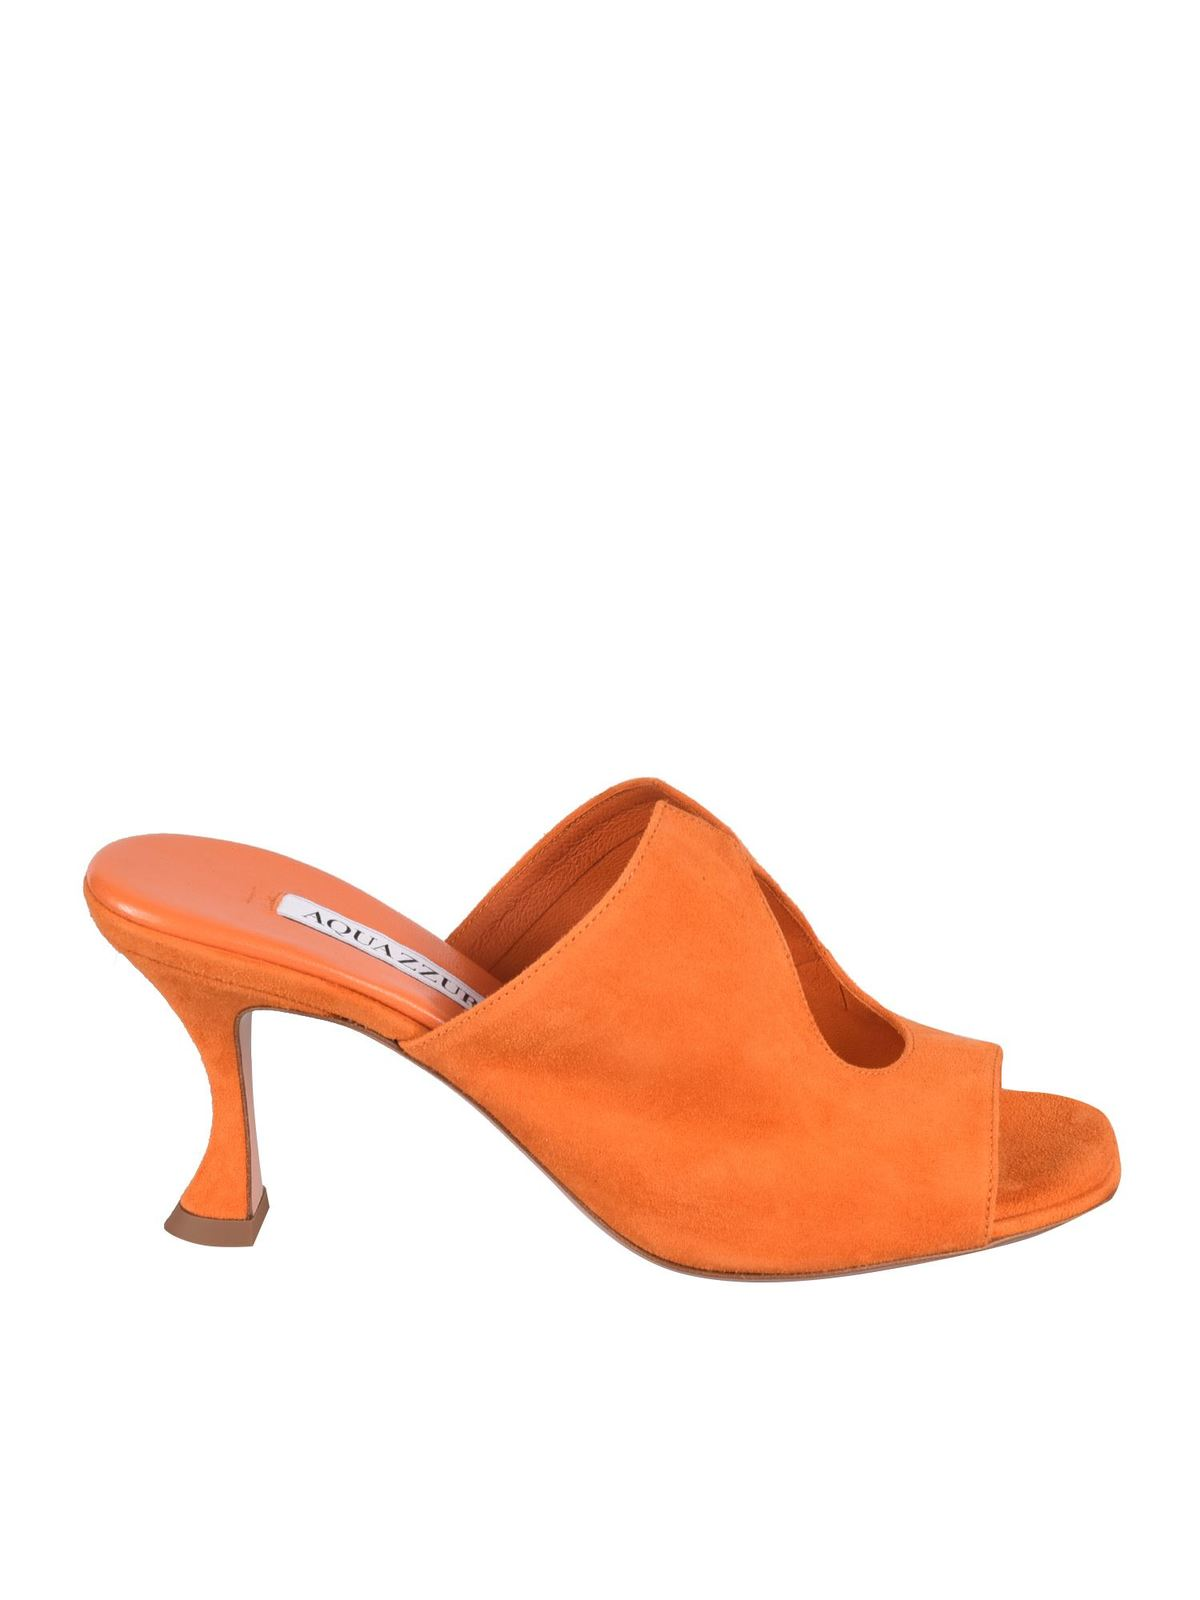 Aquazzura Leathers SEXY THING 75 SANDALS IN PAPAYA COLOR